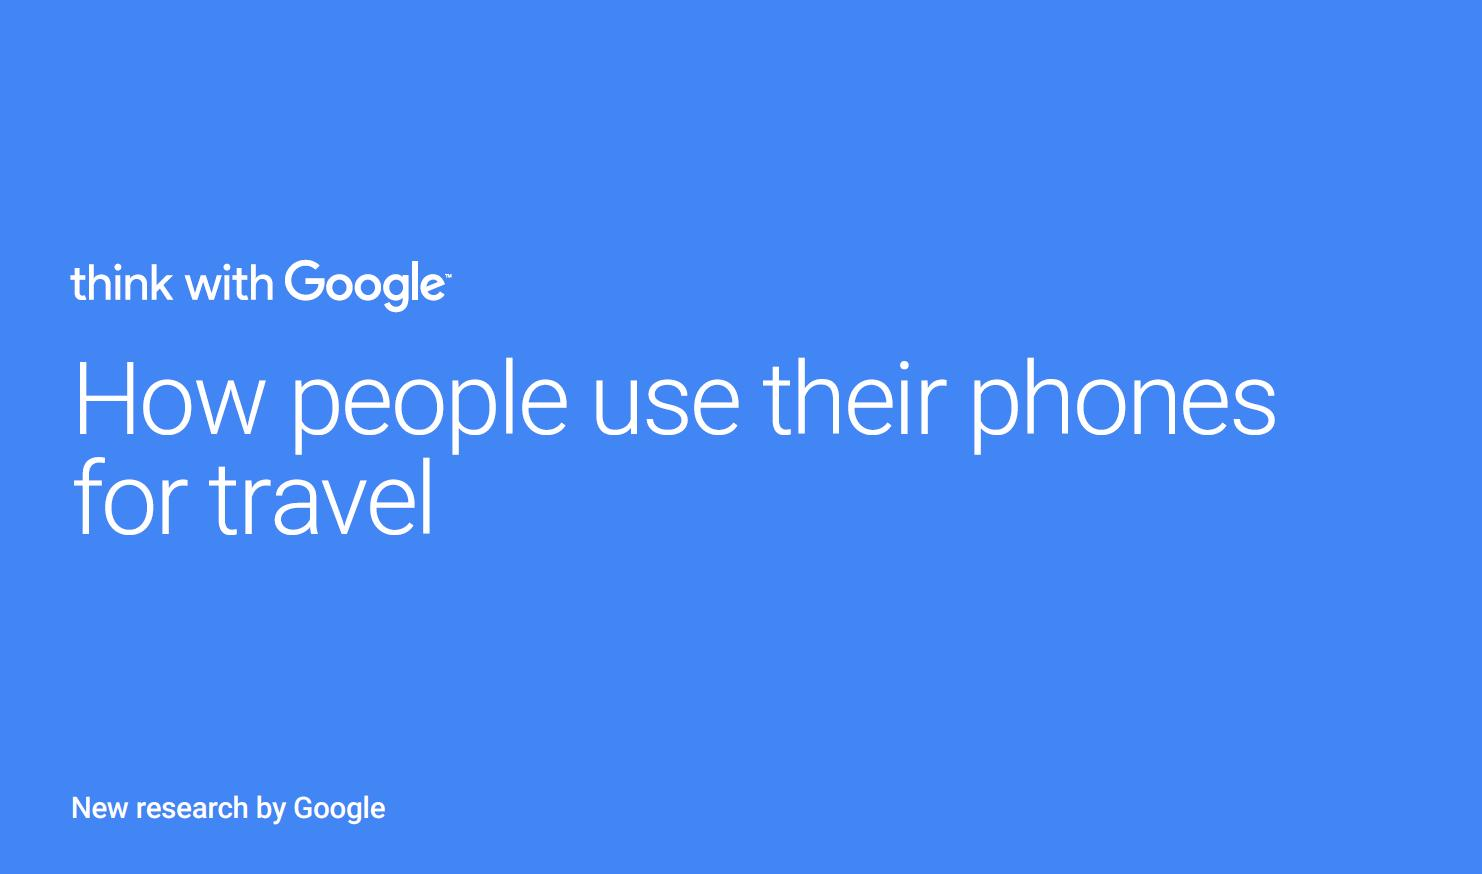 How people use their phones for travel